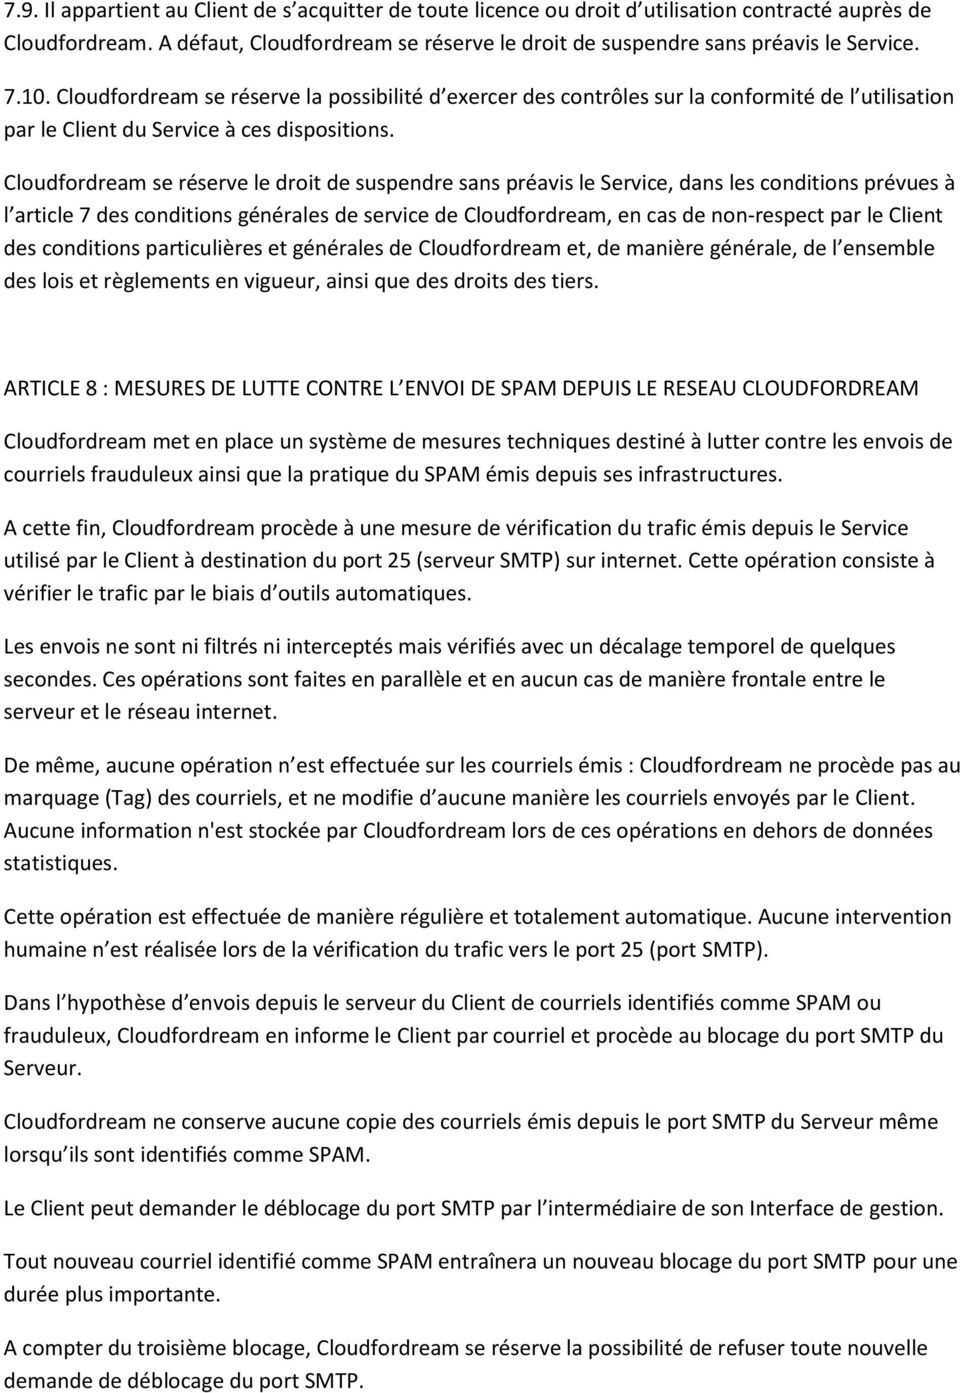 Cloudfordream se réserve le droit de suspendre sans préavis le Service, dans les conditions prévues à l article 7 des conditions générales de service de Cloudfordream, en cas de non-respect par le